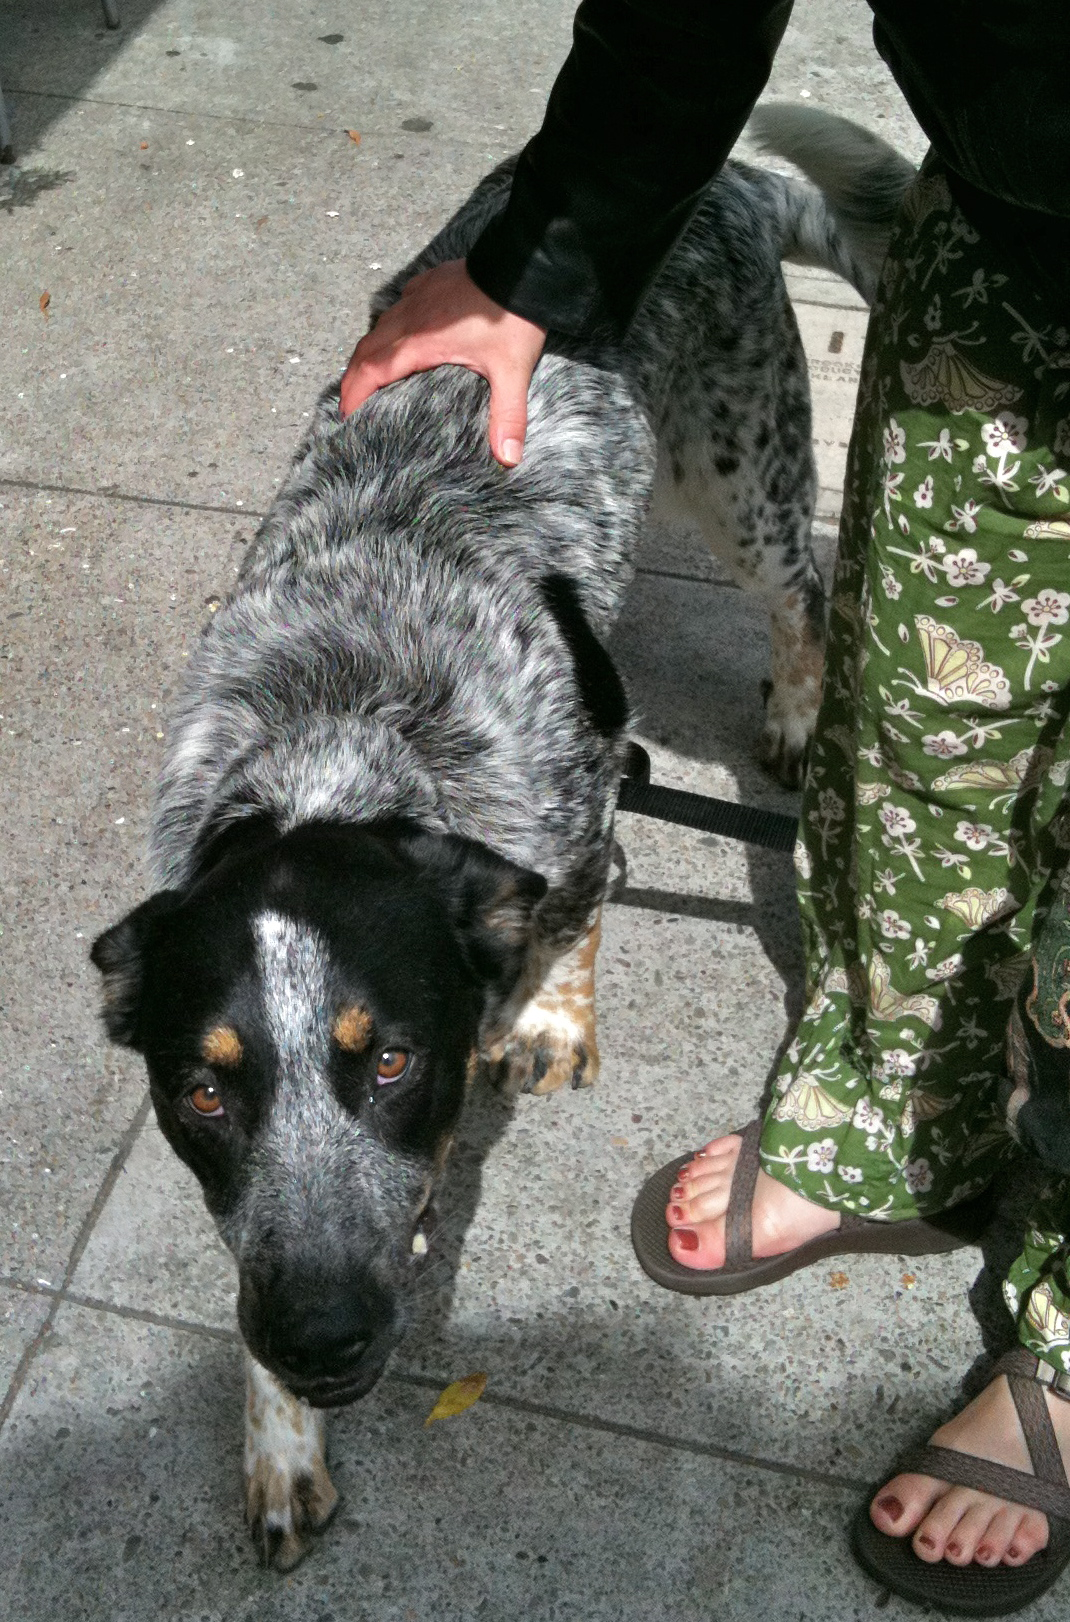 Dog Of The Day Mancha The German Shepherd Catahoula Leopard Dog Mix The Dogs Of San